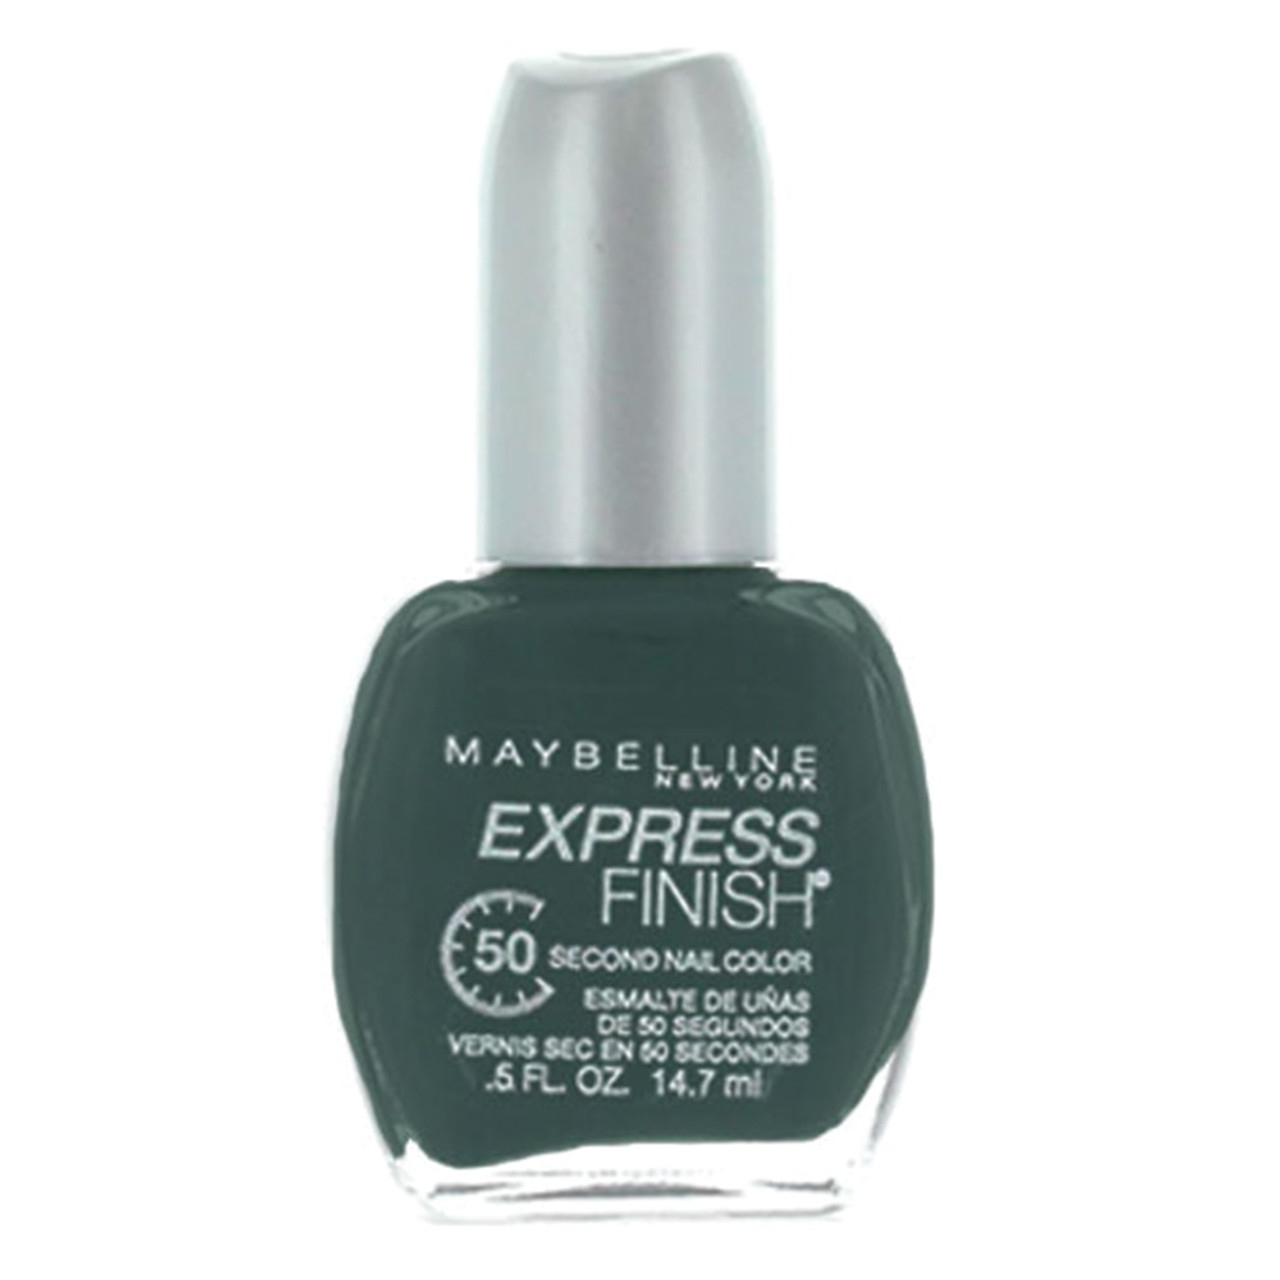 Maybelline Express Finish 50 Second Nail Color - BuyMeBeauty.com